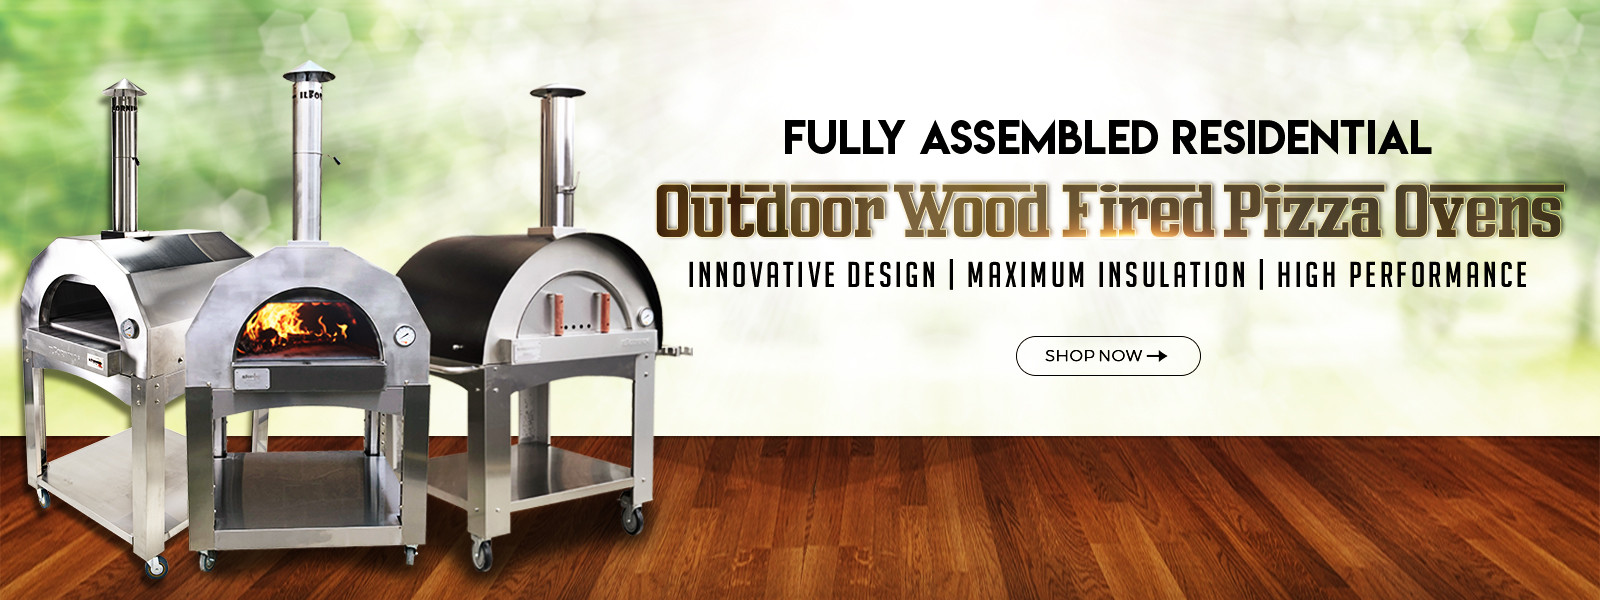 Slider-Wood Fired Pizza Oven for Home